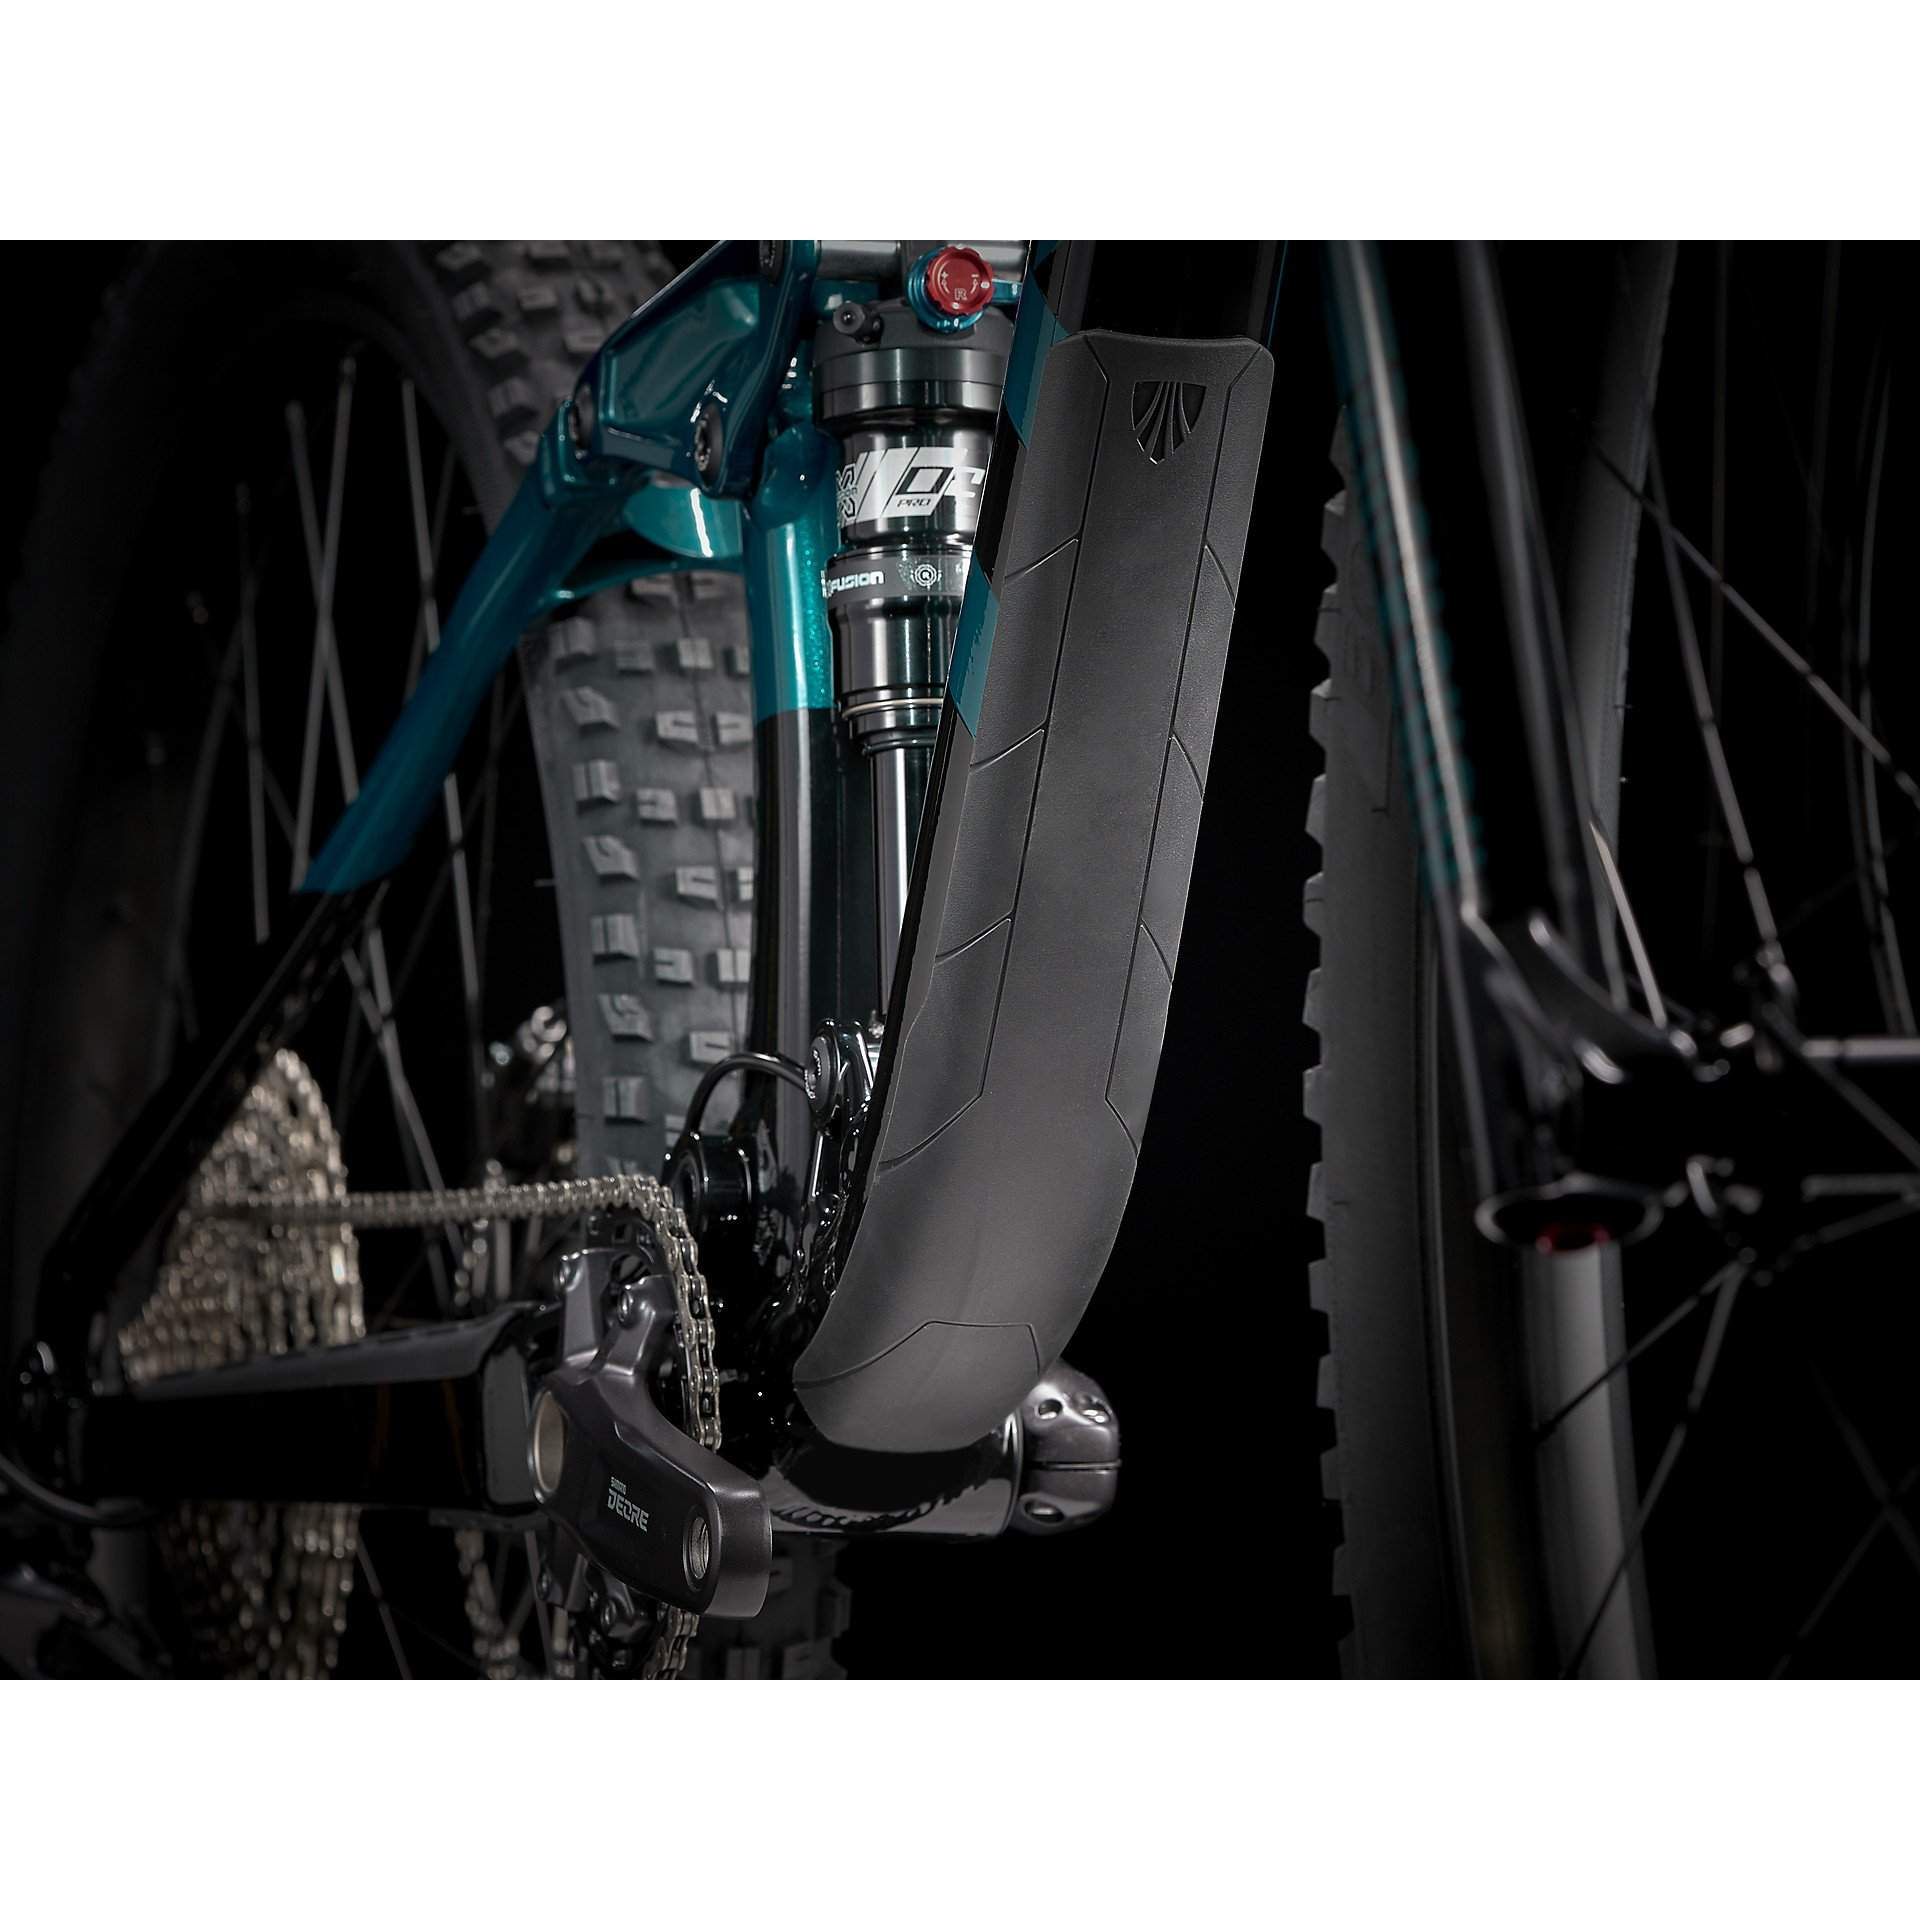 ROWER TREK FUEL EX 5 DARK AQUATIC|TREK BLACK 9